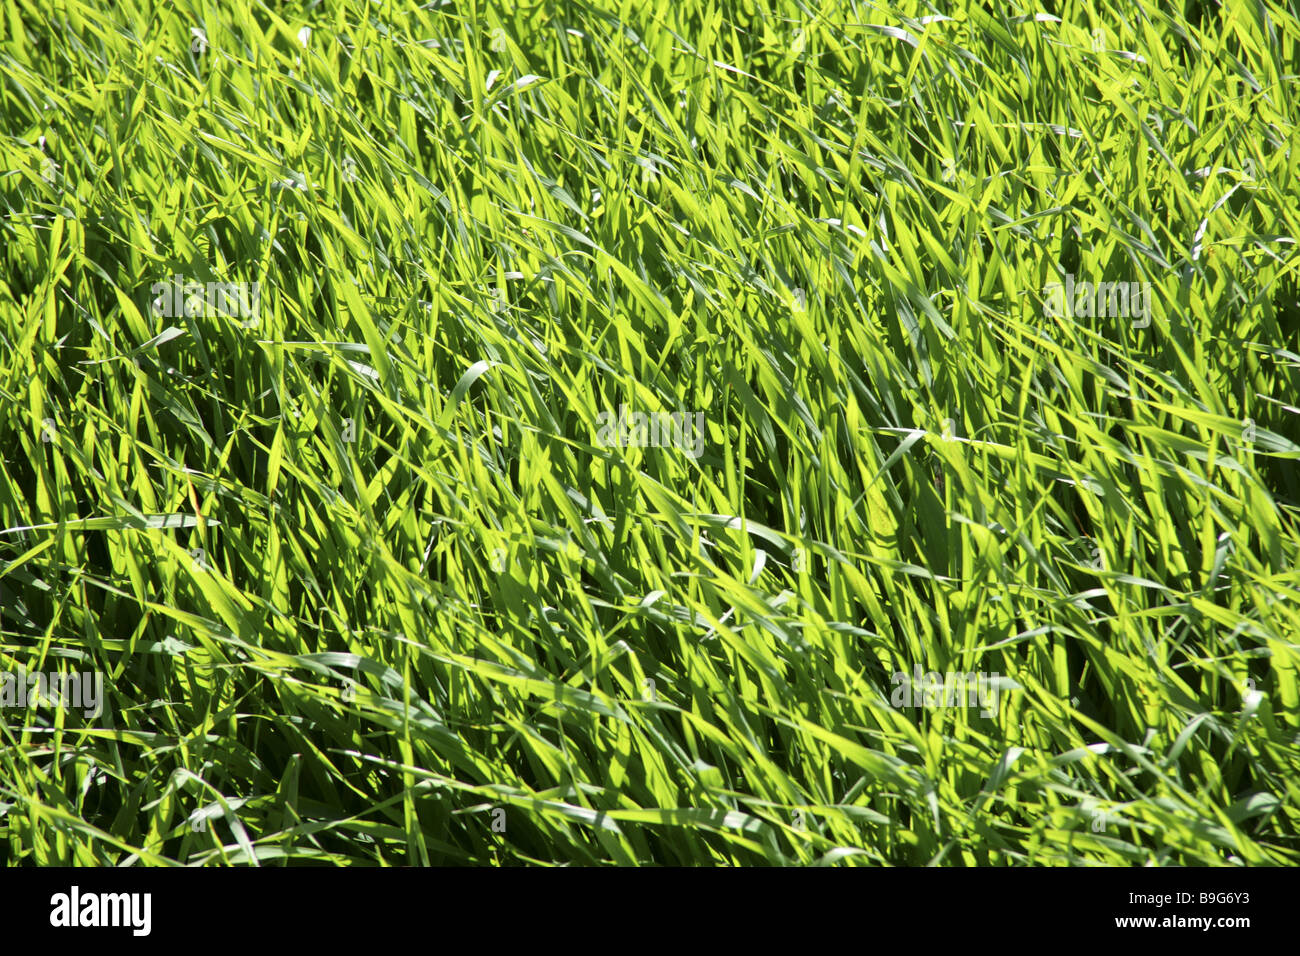 Meadow grass juicy green close-up Background Balearic Islands chlorophyll Close-up detail field-landscape fertile - Stock Image